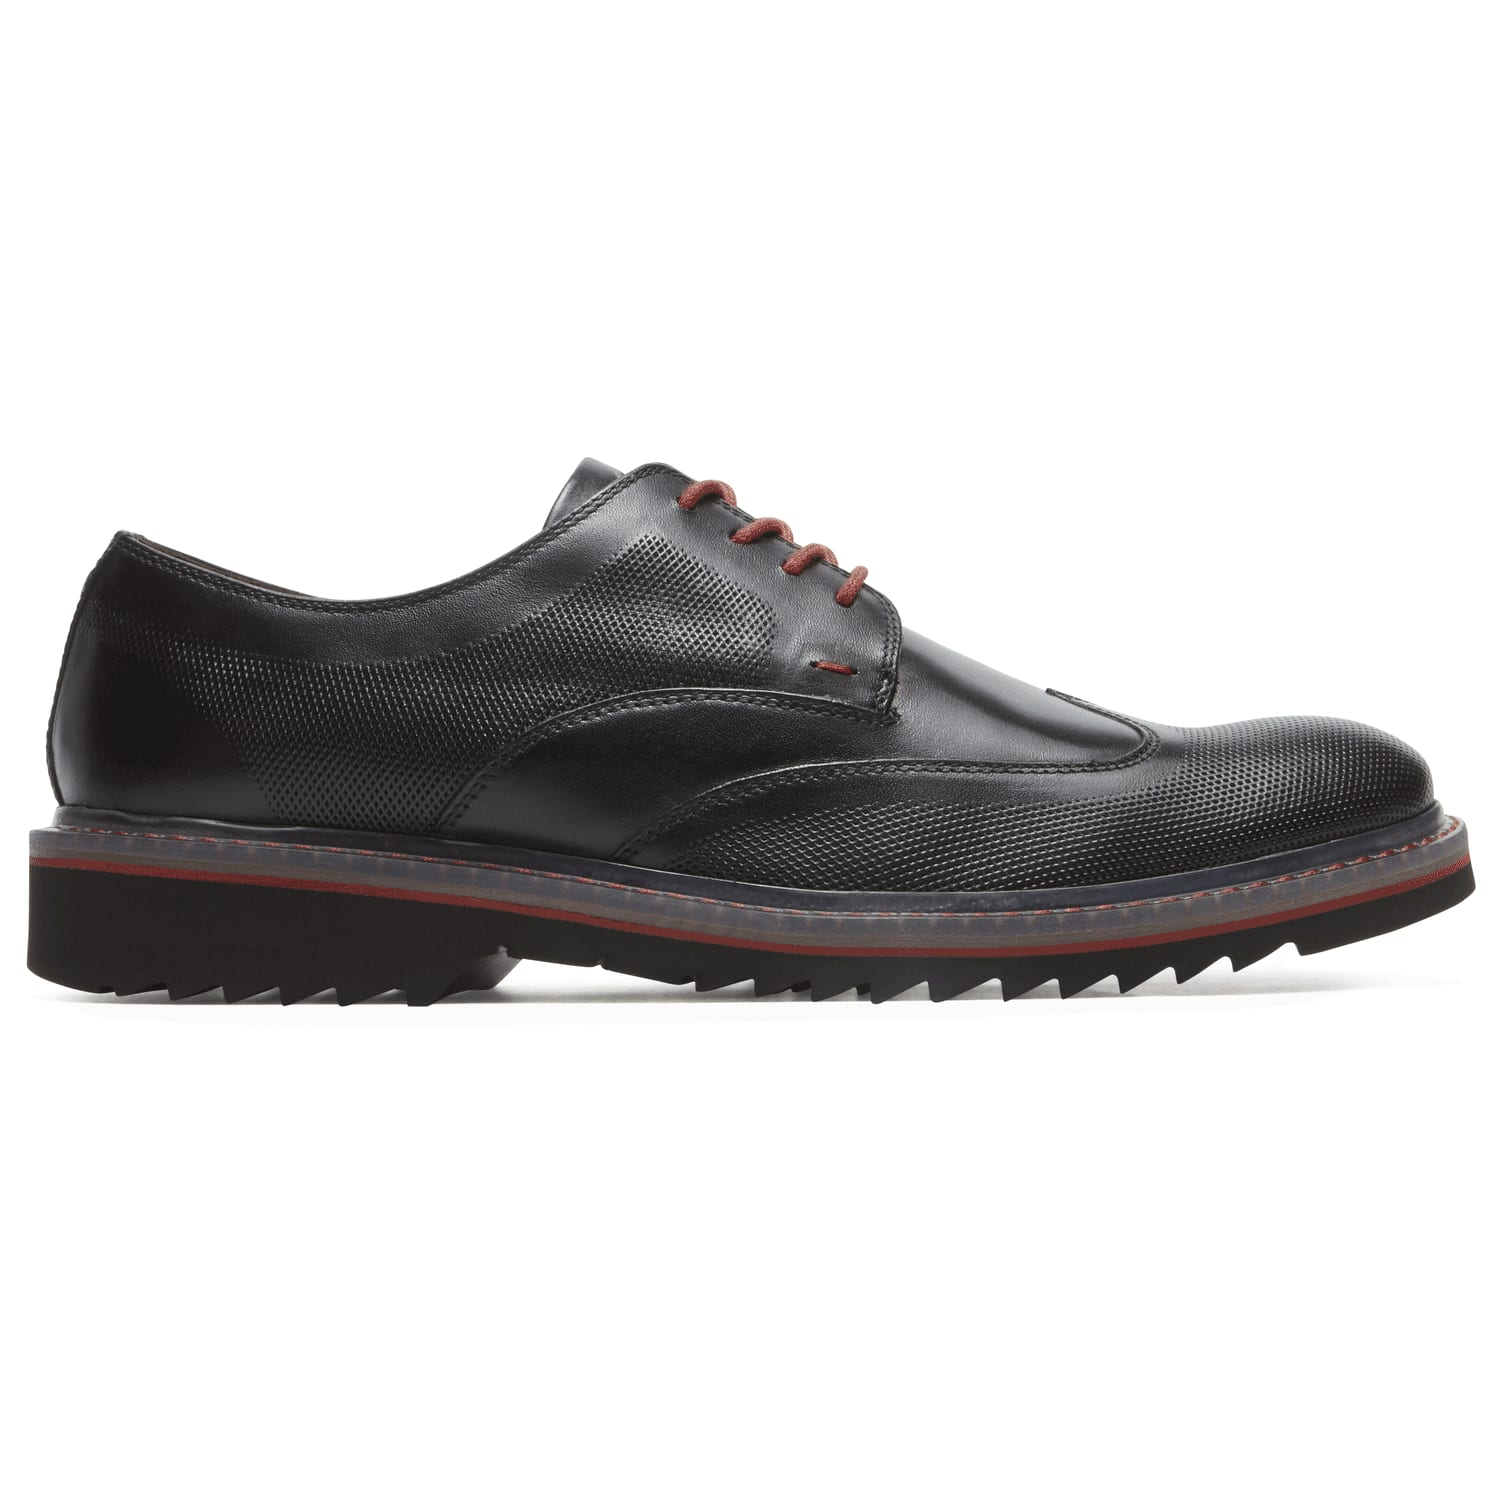 Rockport and Rockport Outlet: Extra 30% Off Men's and Women's Shoes + Free Shipping